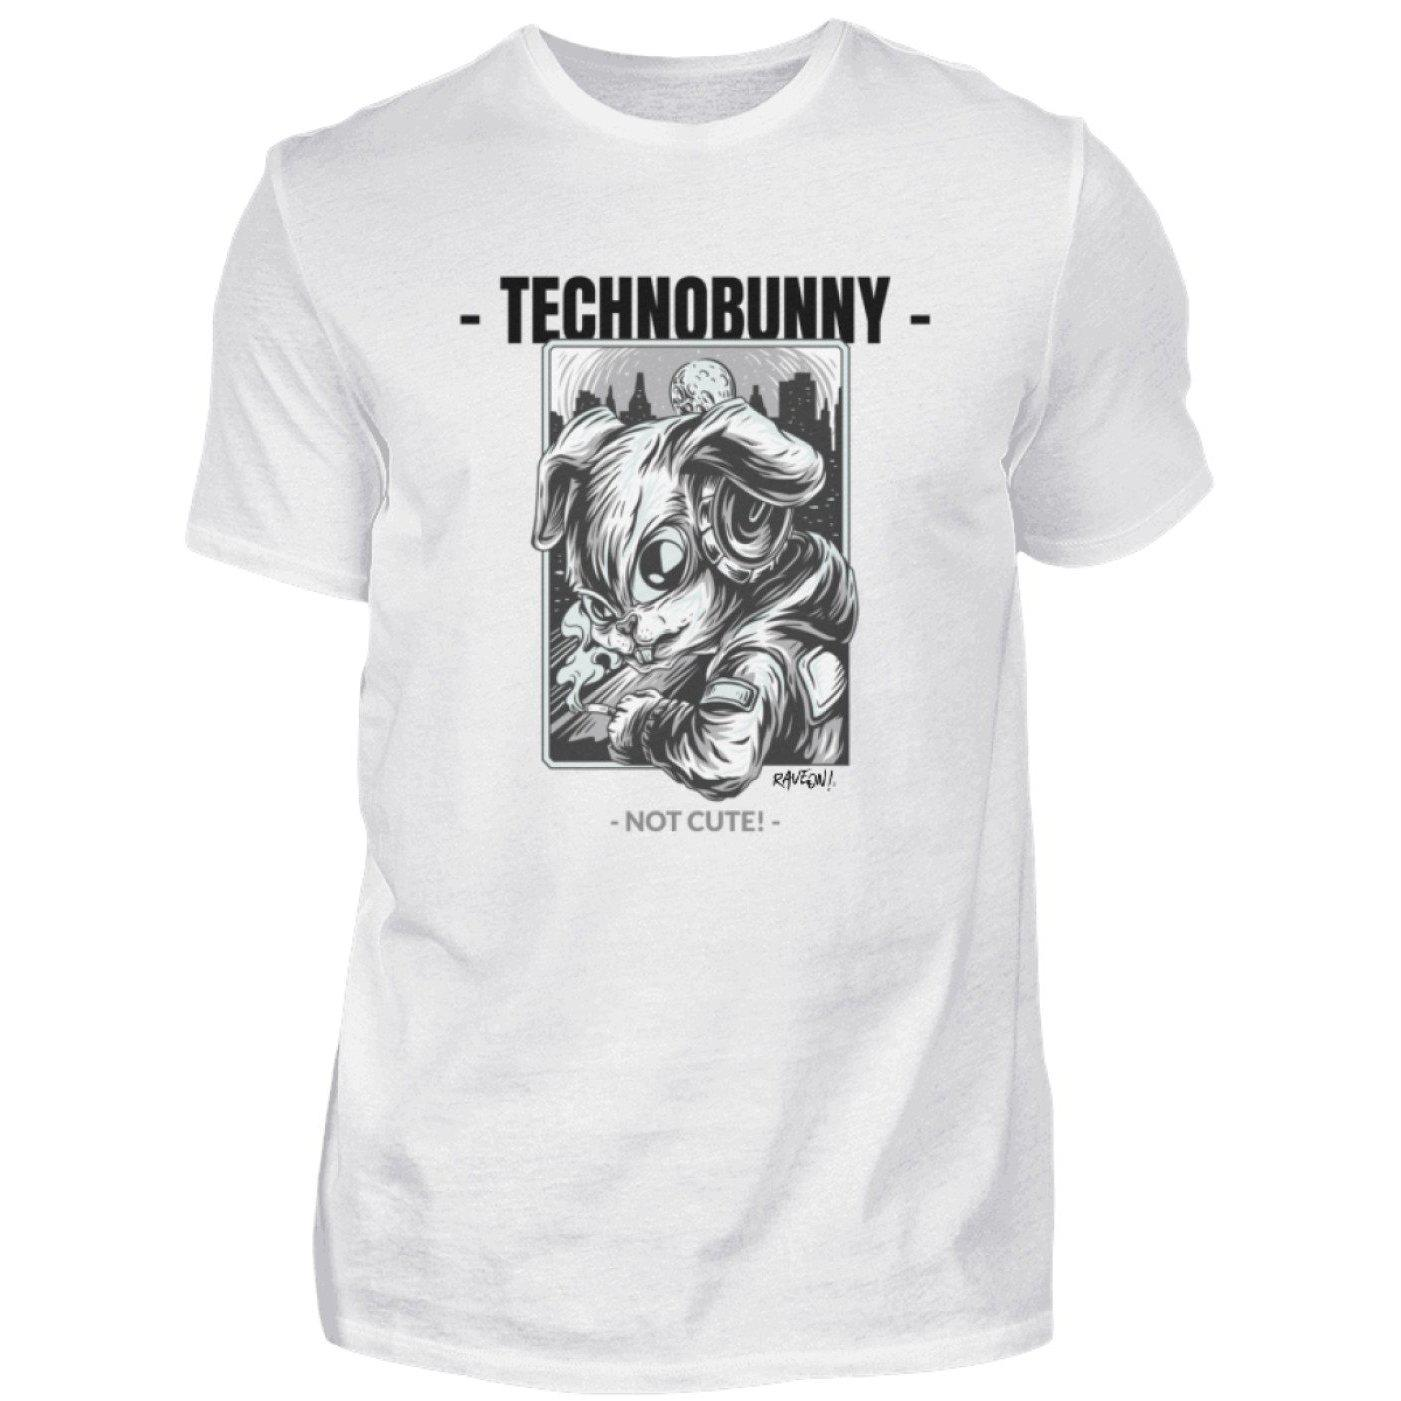 TECHNOBUNNY - Not Cute! - Rave On!® - Herren Shirt Herren Basic T-Shirt White / S - Rave On!® der Club & Techno Szene Shop für Coole Junge Mode Streetwear Style & Fashion Outfits + Sexy Festival 420 Stuff